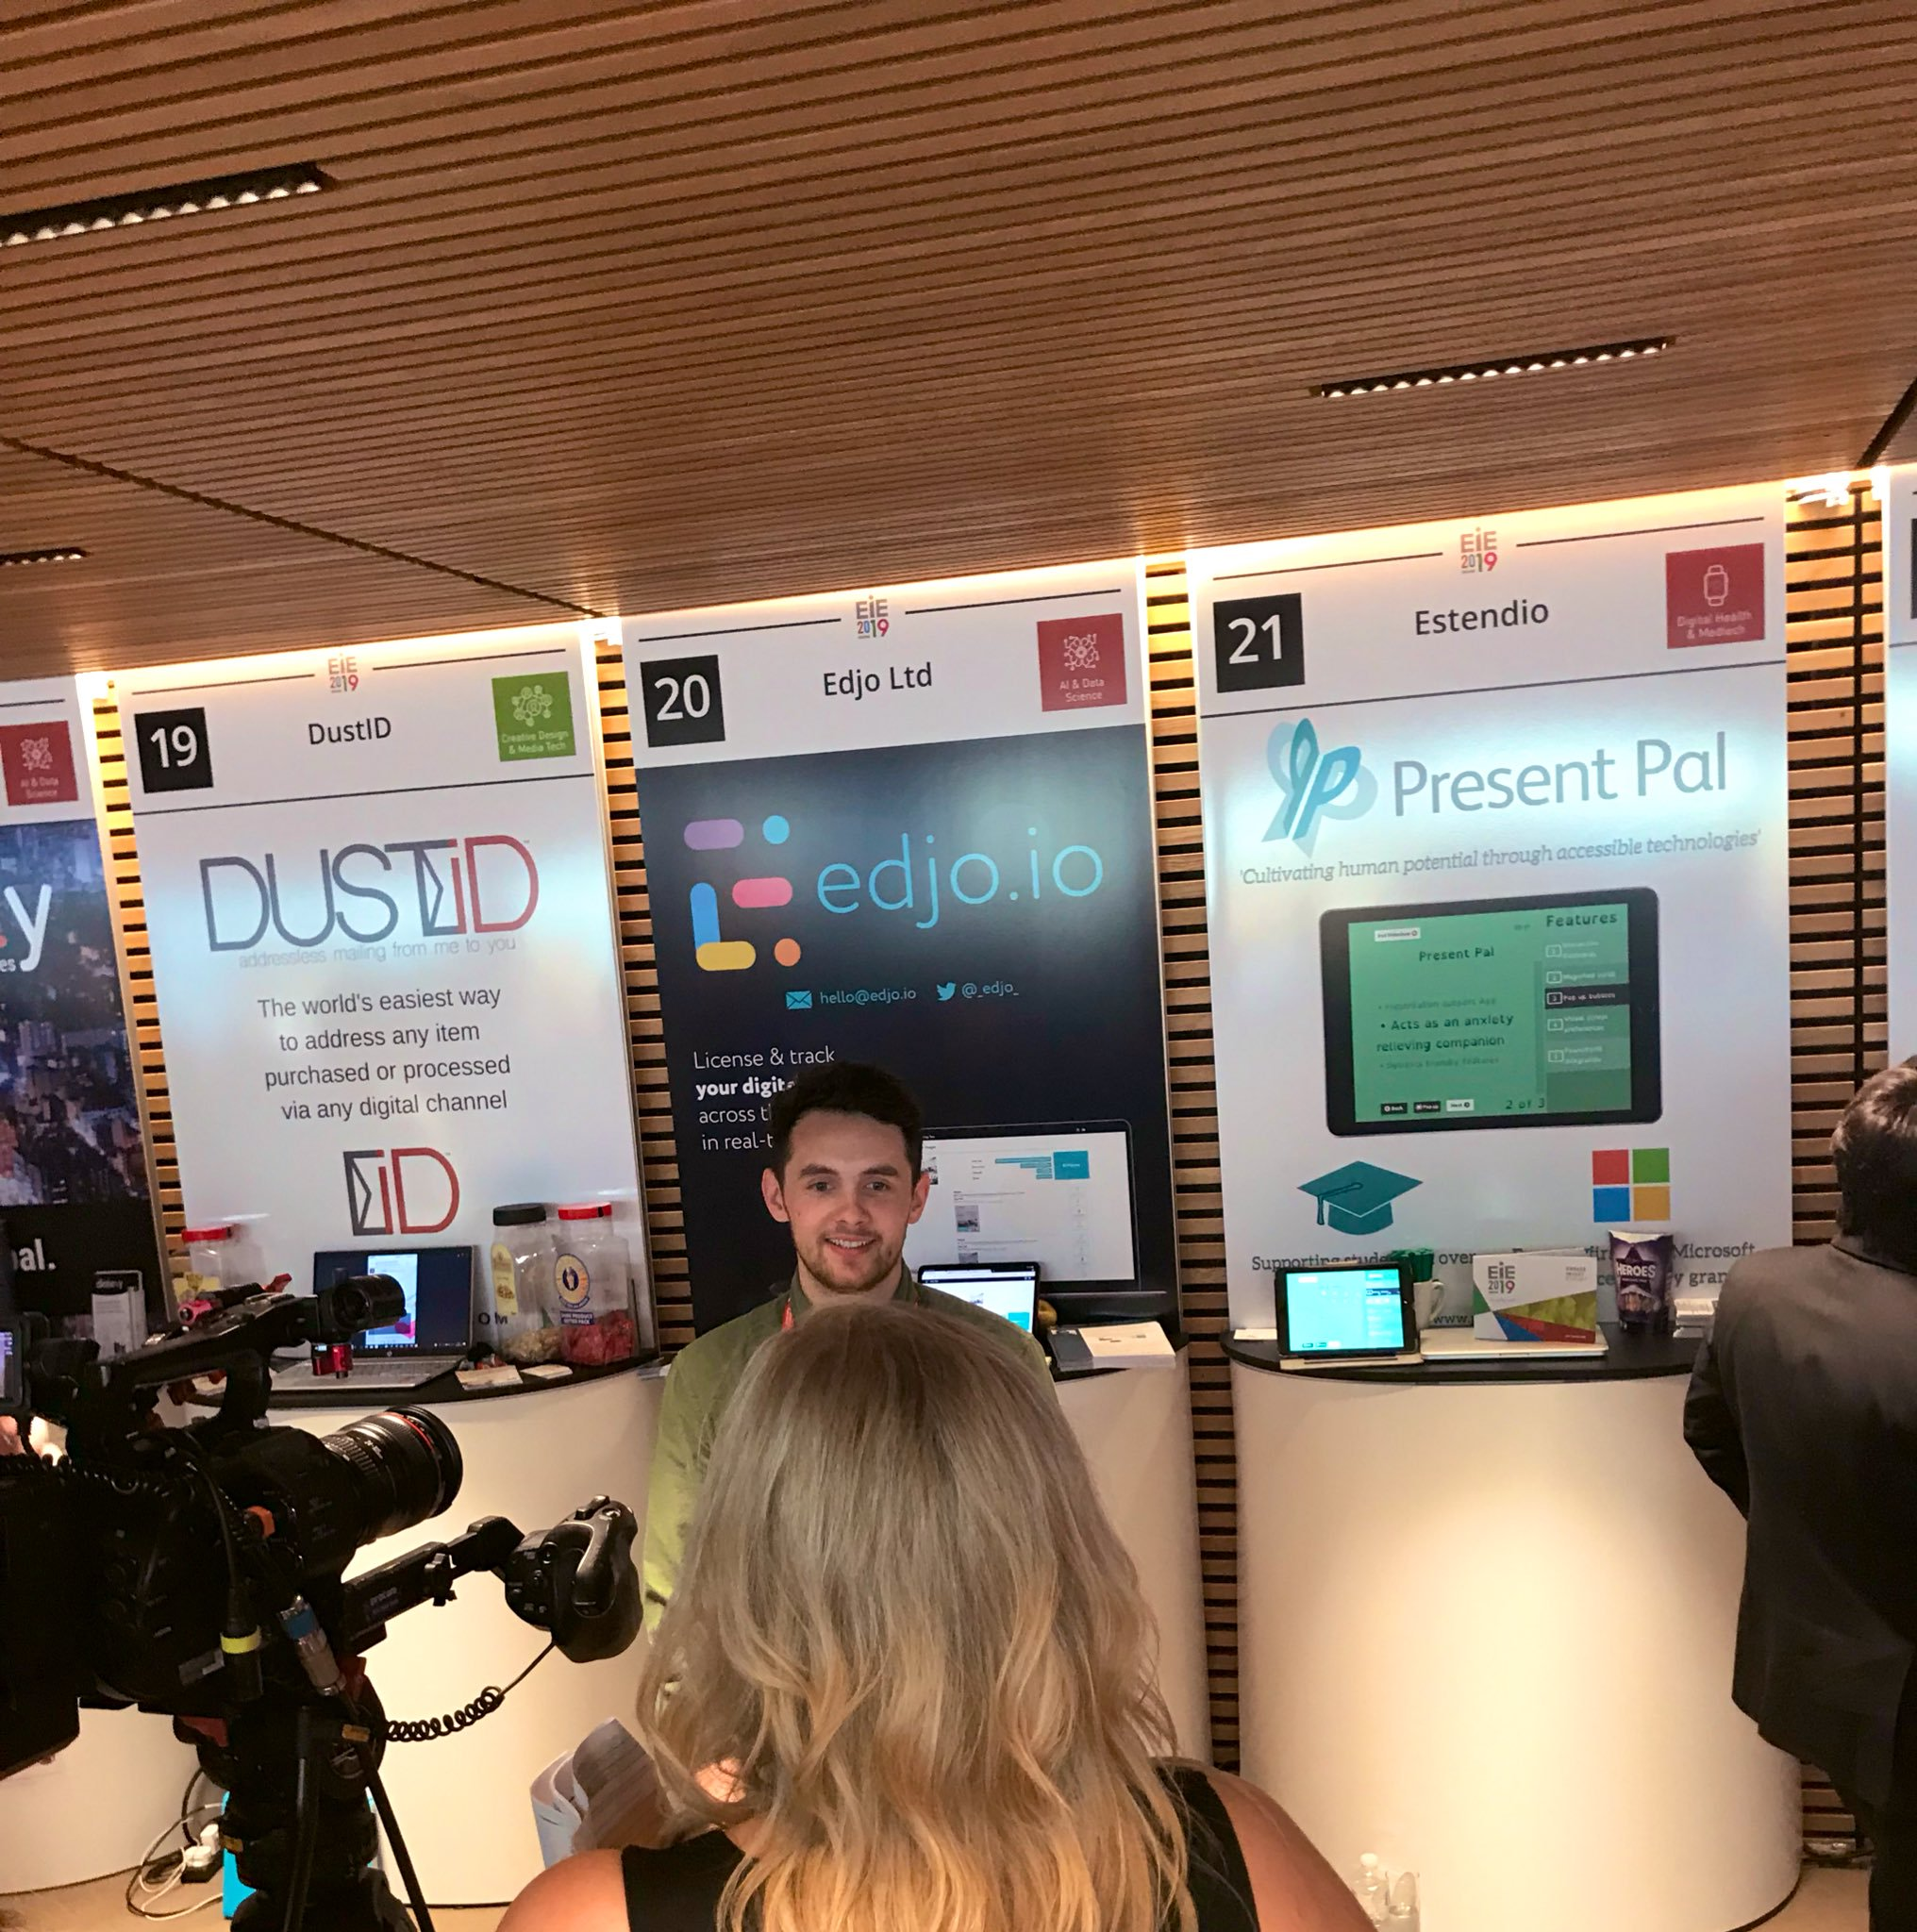 IMAGE: Chris Hughes being interviewed at EIE 2019 in front of our Present Pal stall.